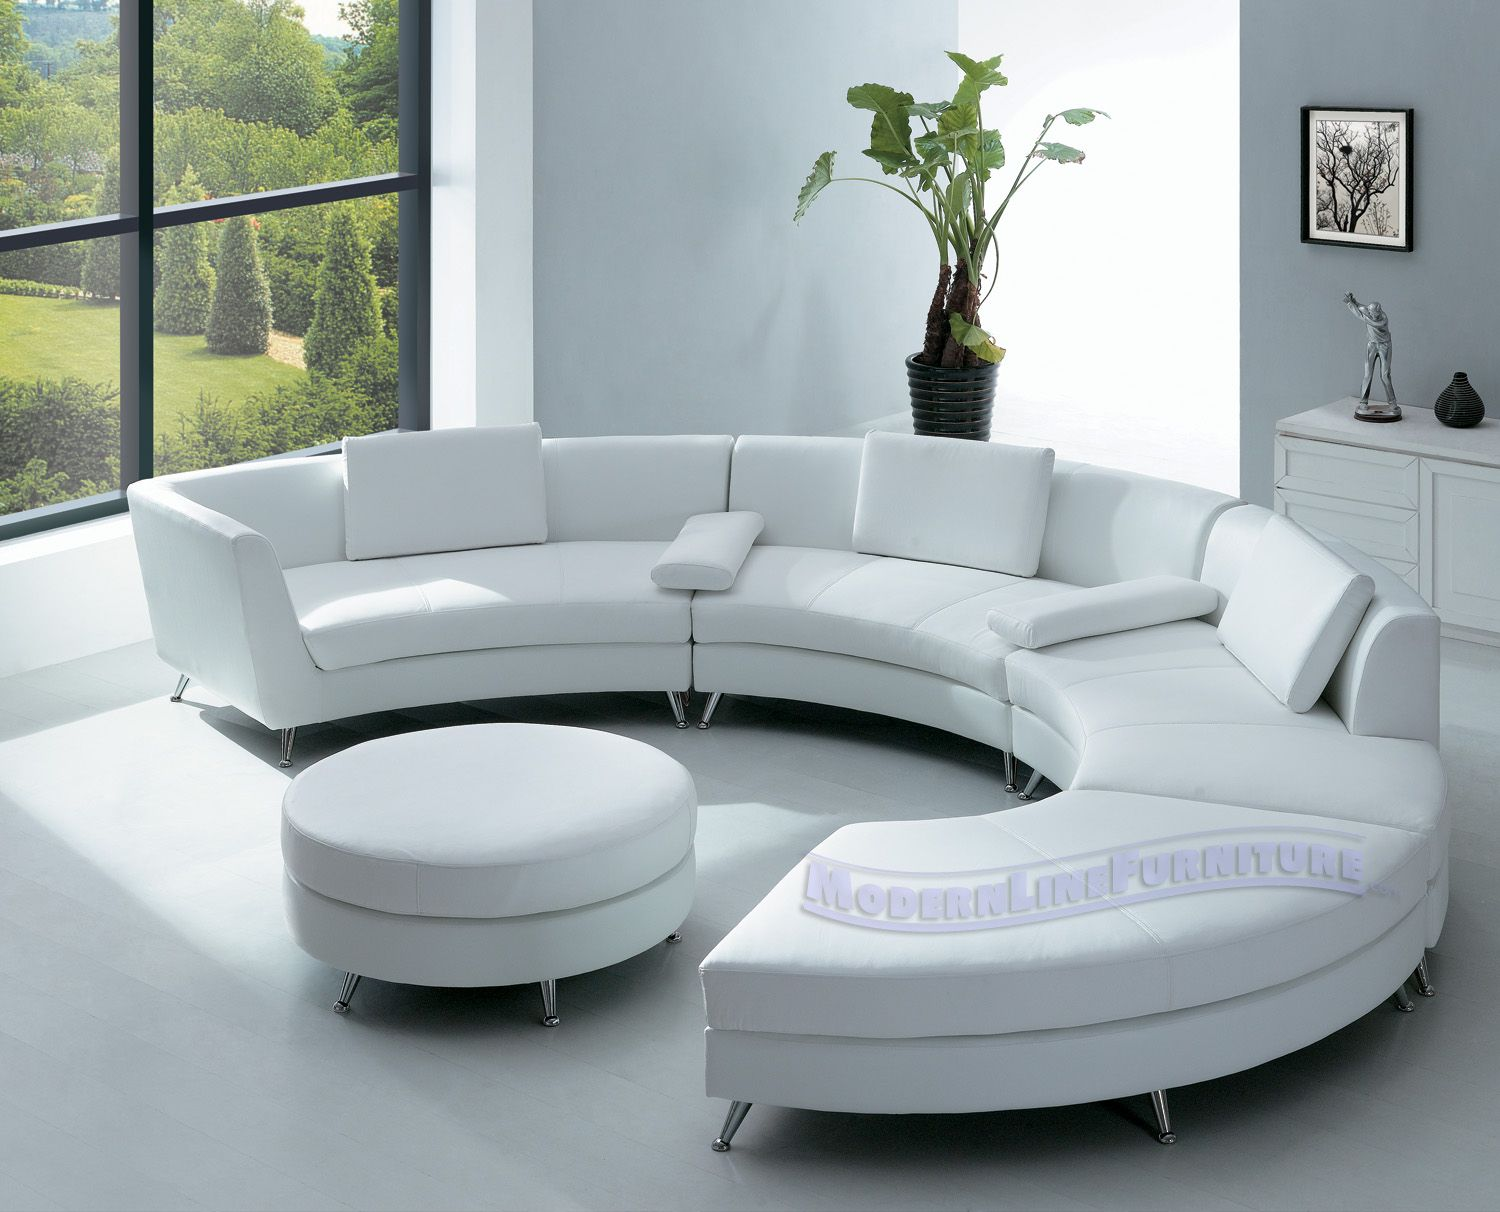 Sofa Furniture best 20+ round sofa ideas on pinterest | contemporary sofa